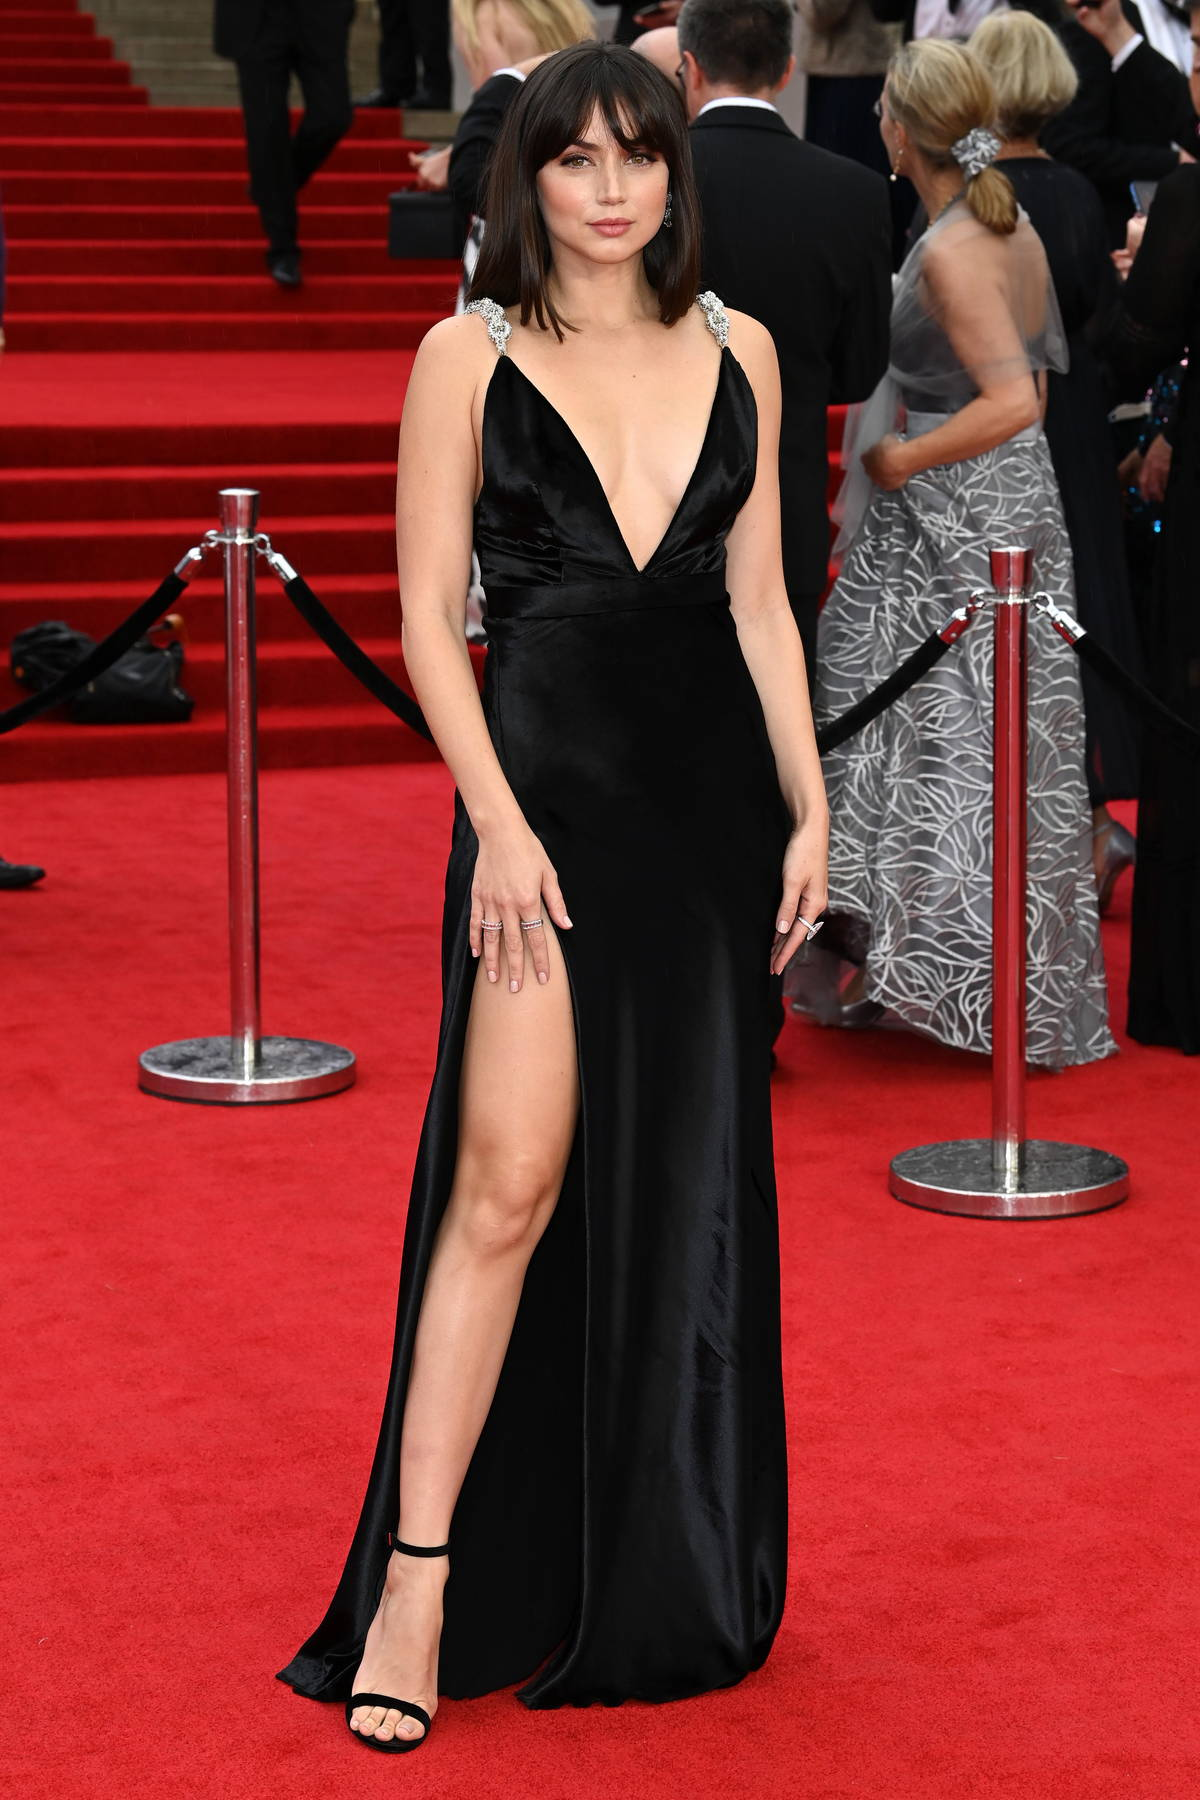 Ana de Armas attends the World Premiere of 'No Time To Die' at the Royal Albert Hall in London, UK